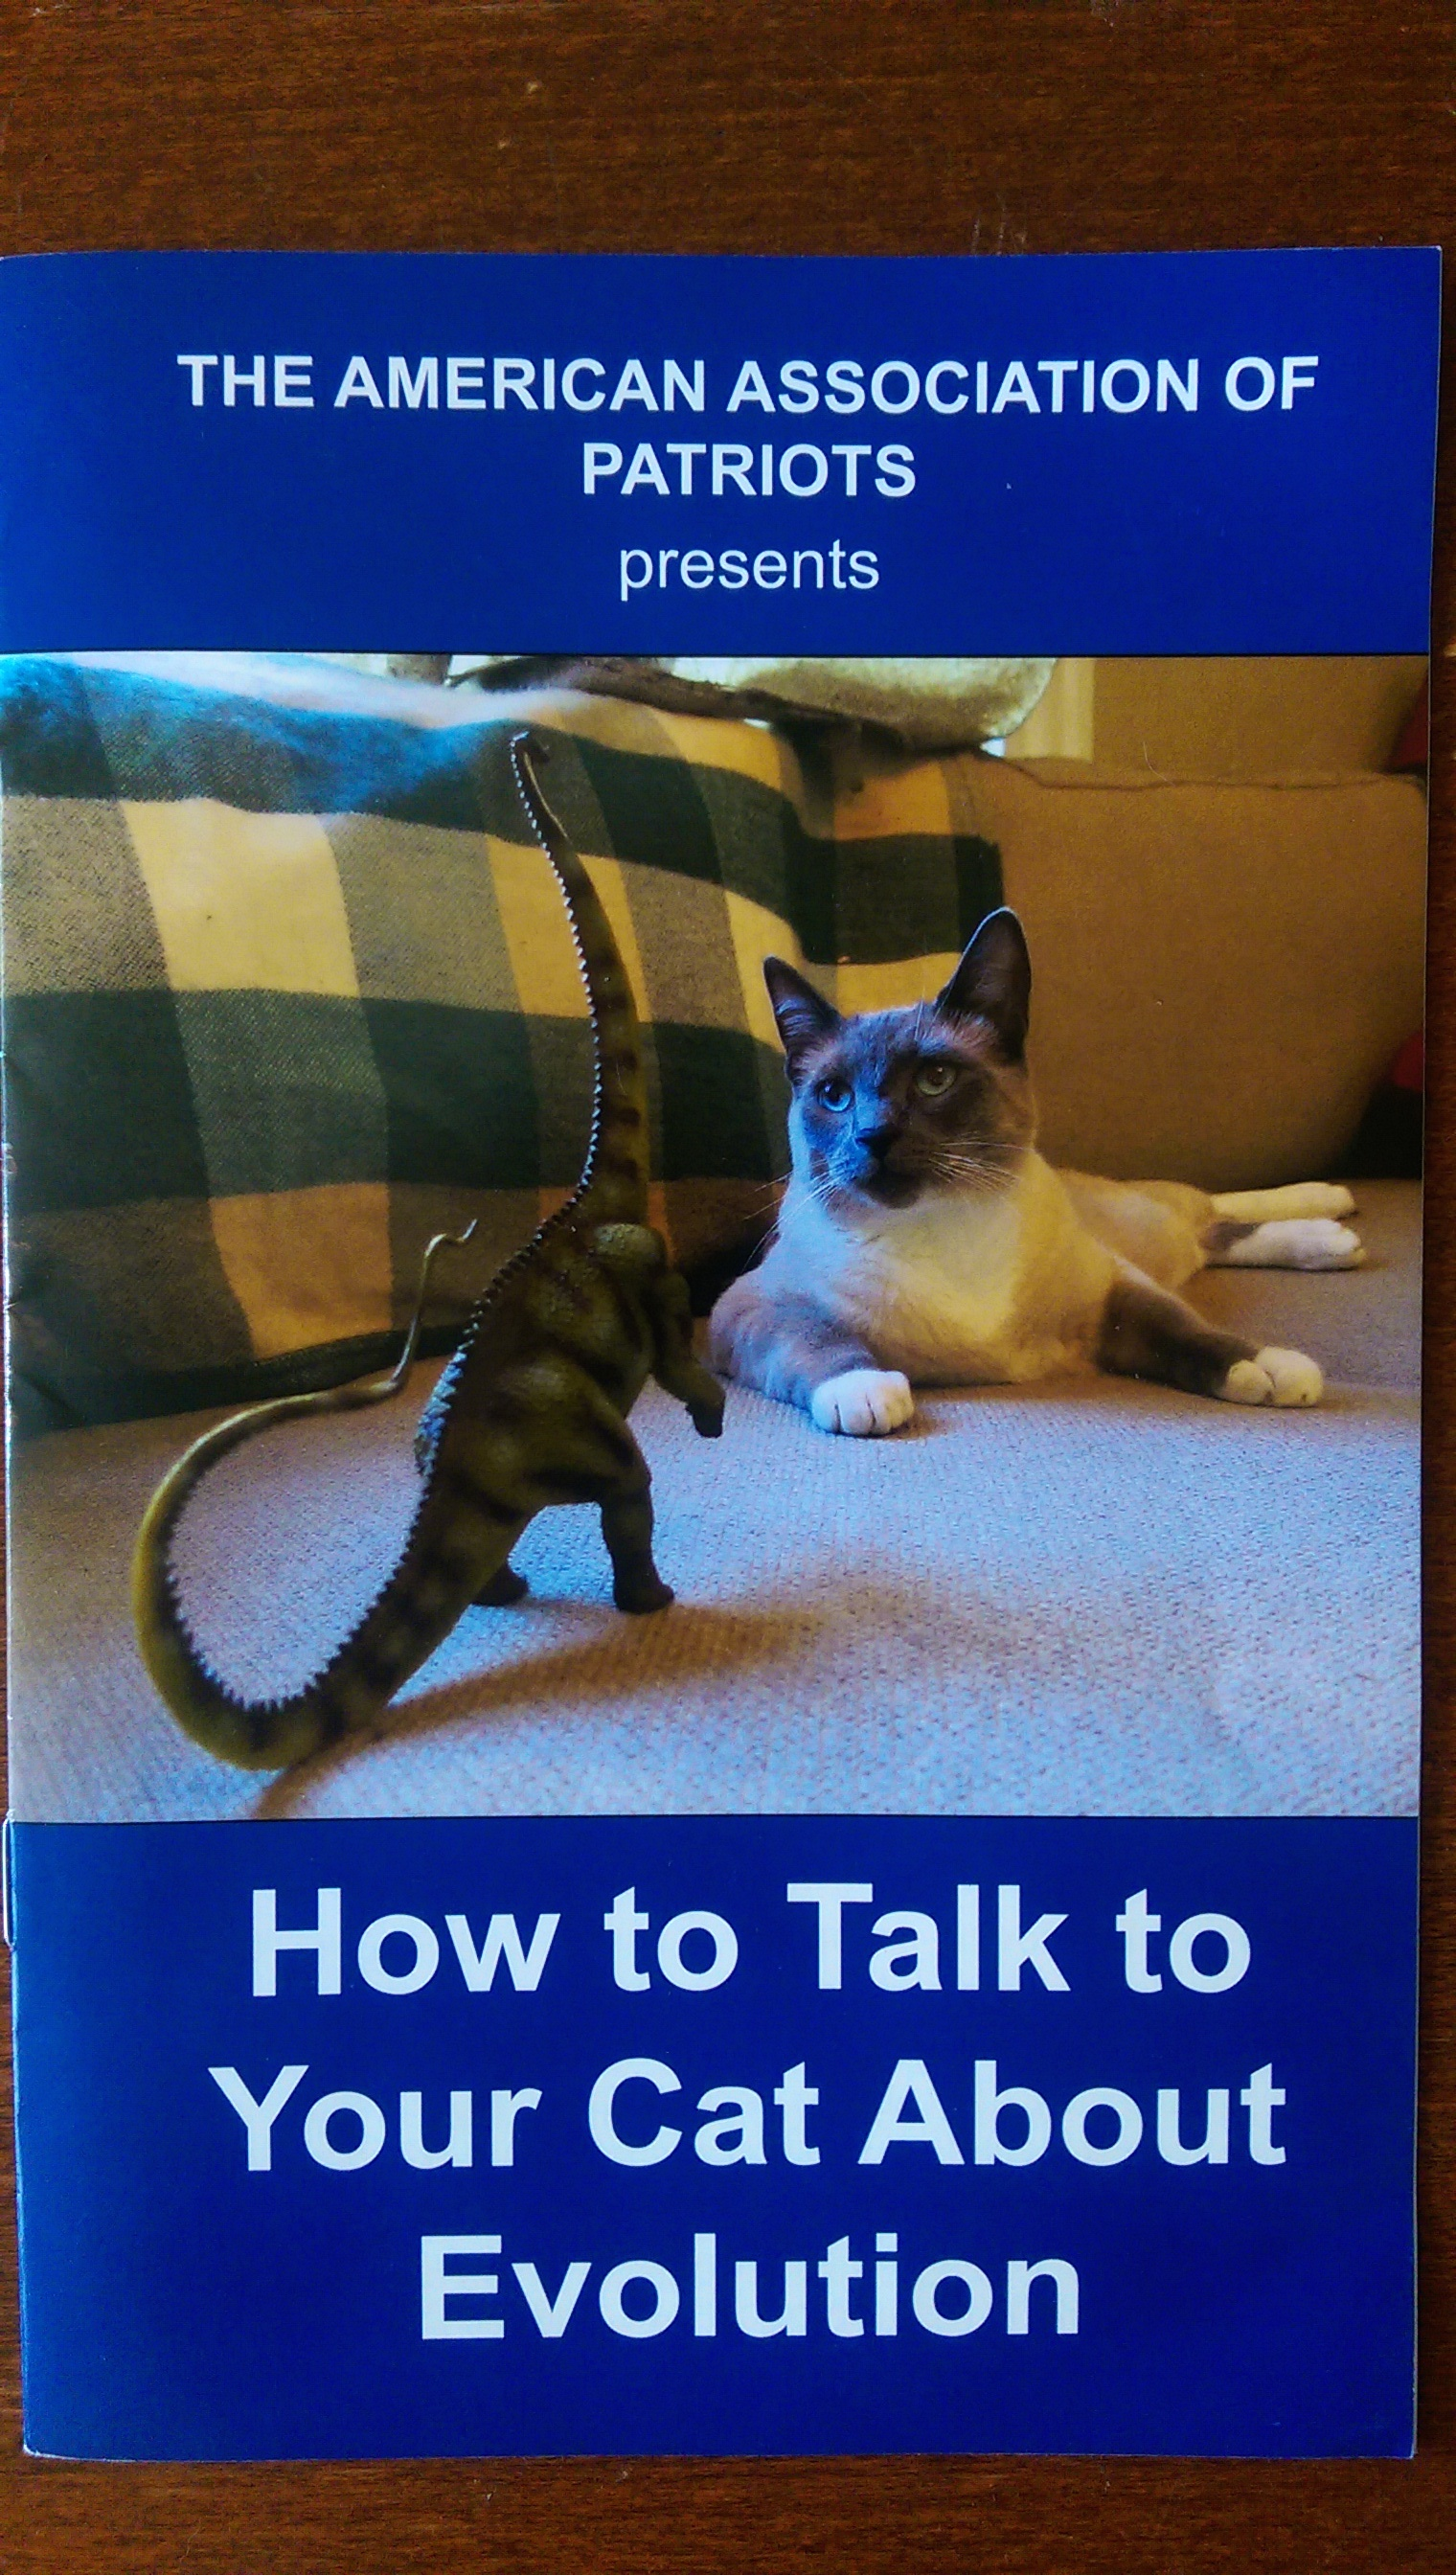 Your cat to talk about gun safety